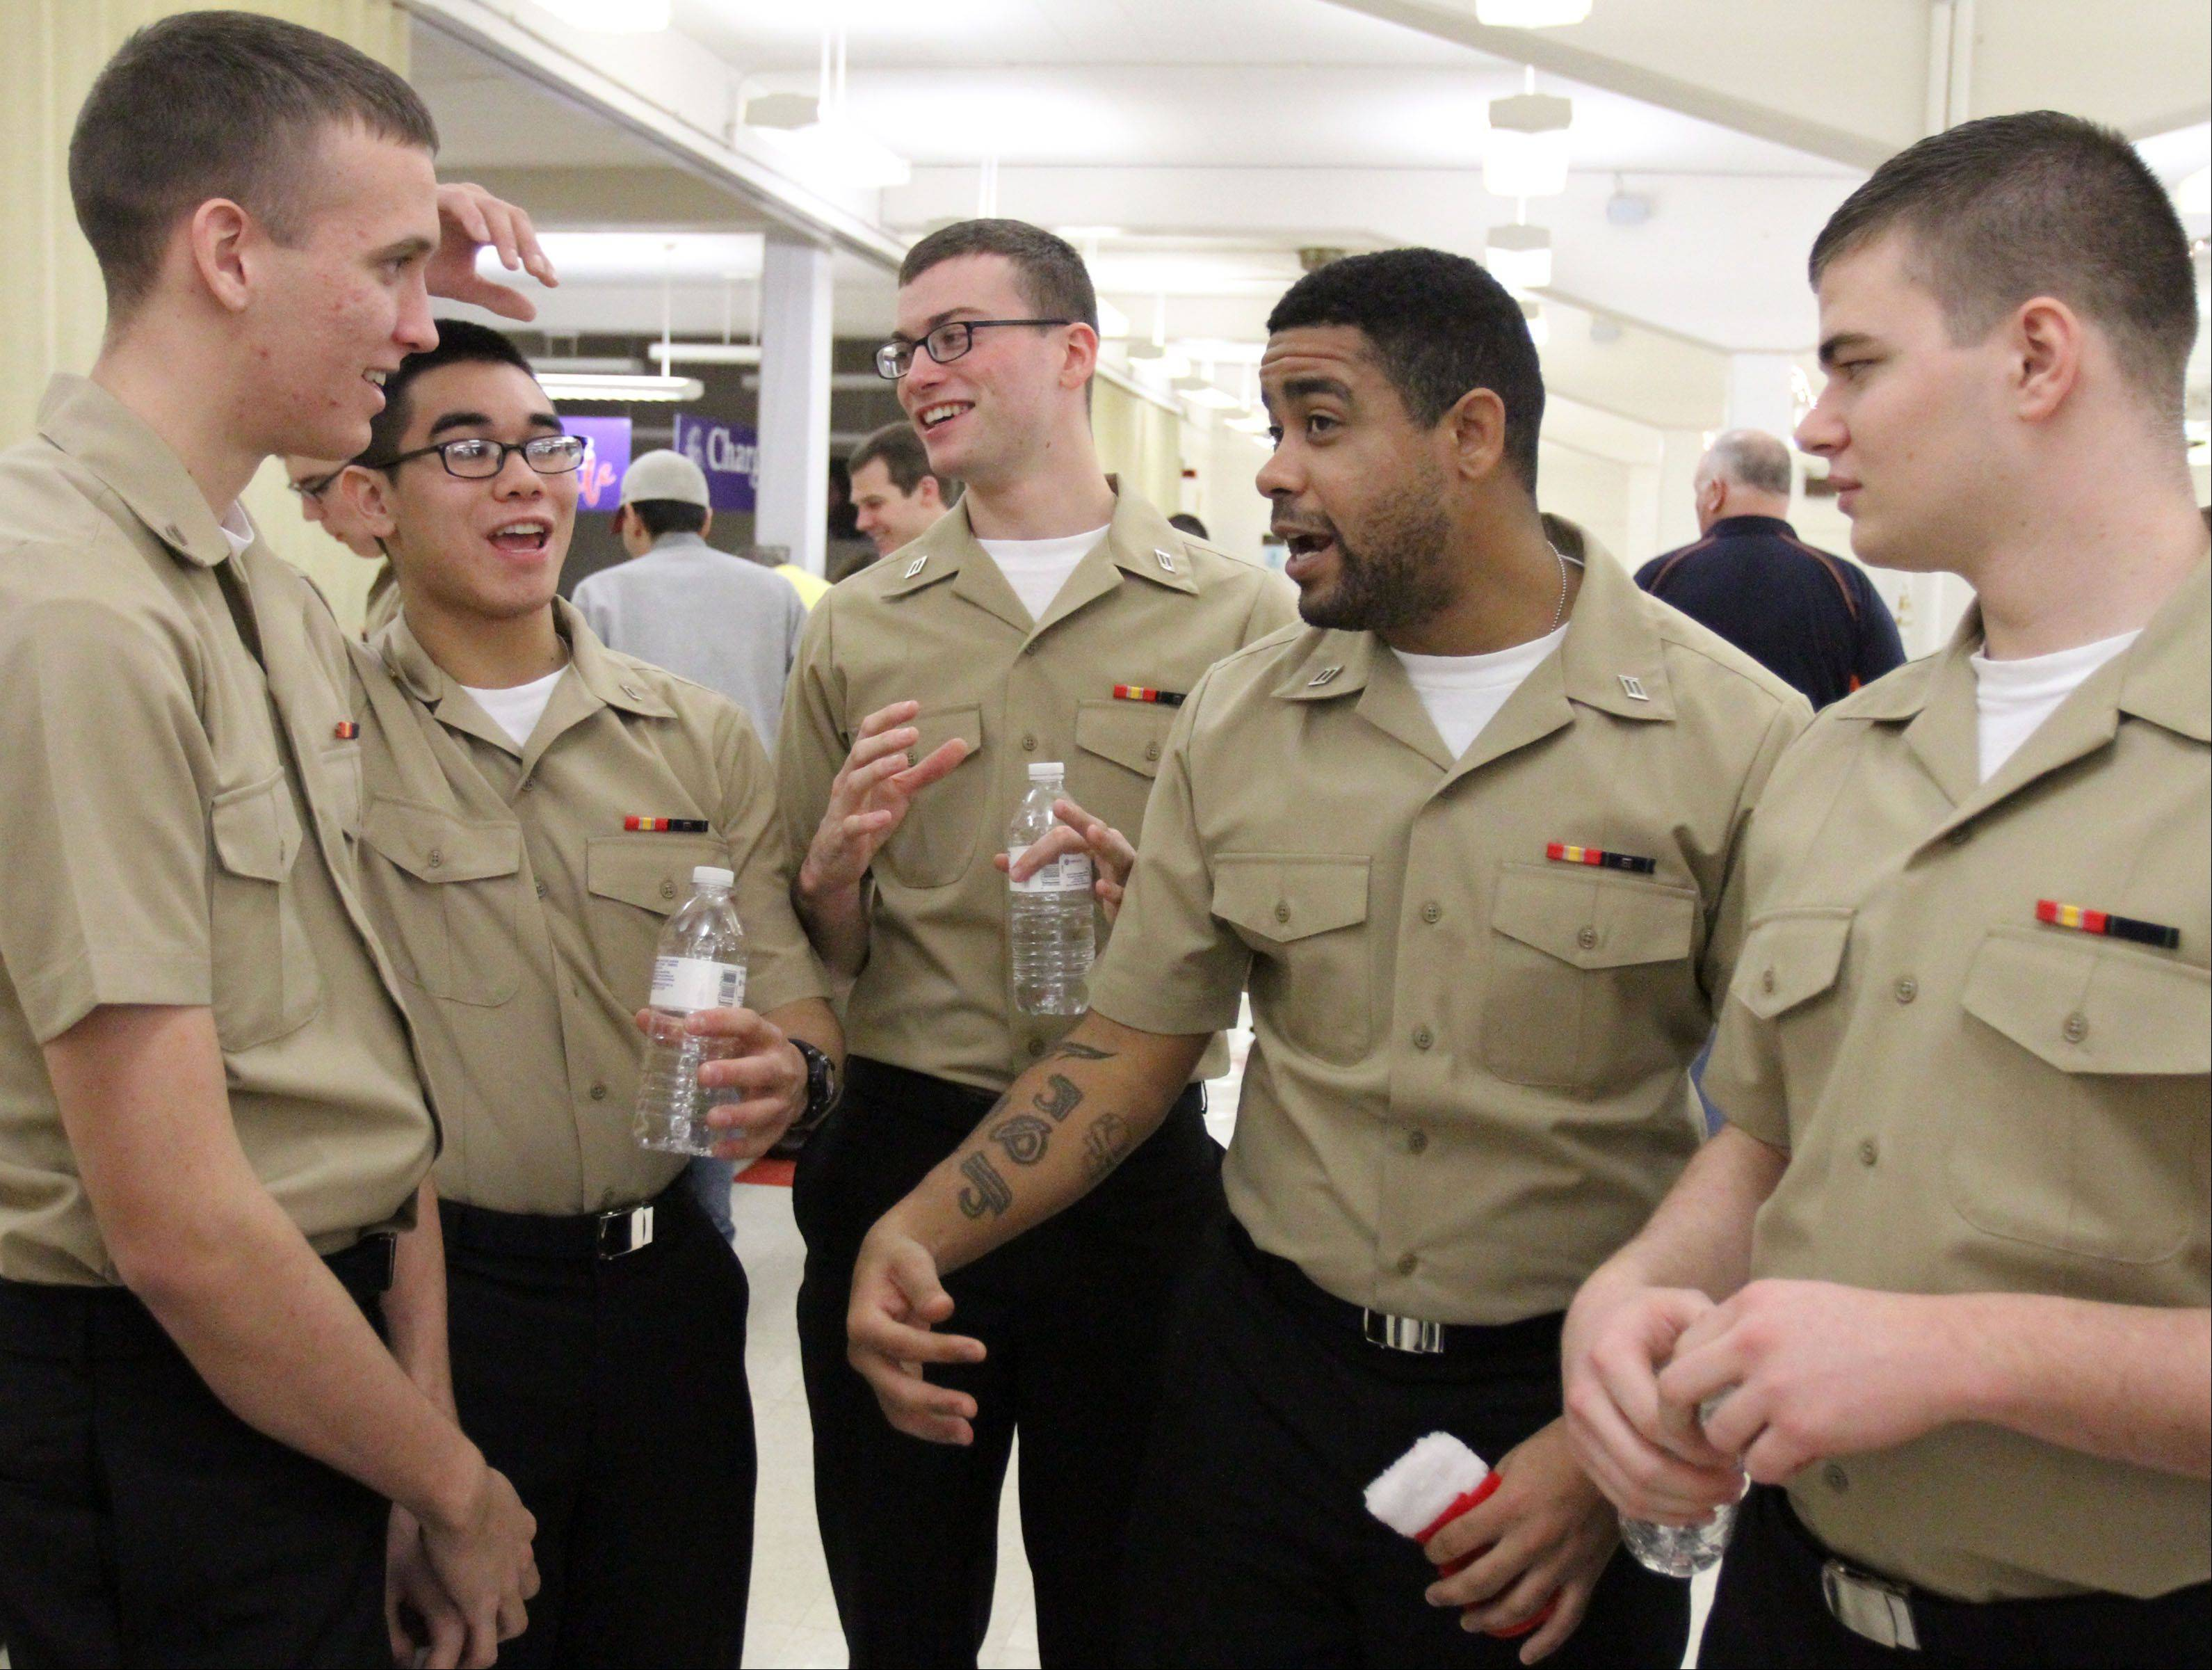 U.S. Navy recruits got to enjoy the simple things in life, like laughing it up with co-recruits. One recruit said his jaw was hurting from so much laughing, which he hadn't been able to do much during training.